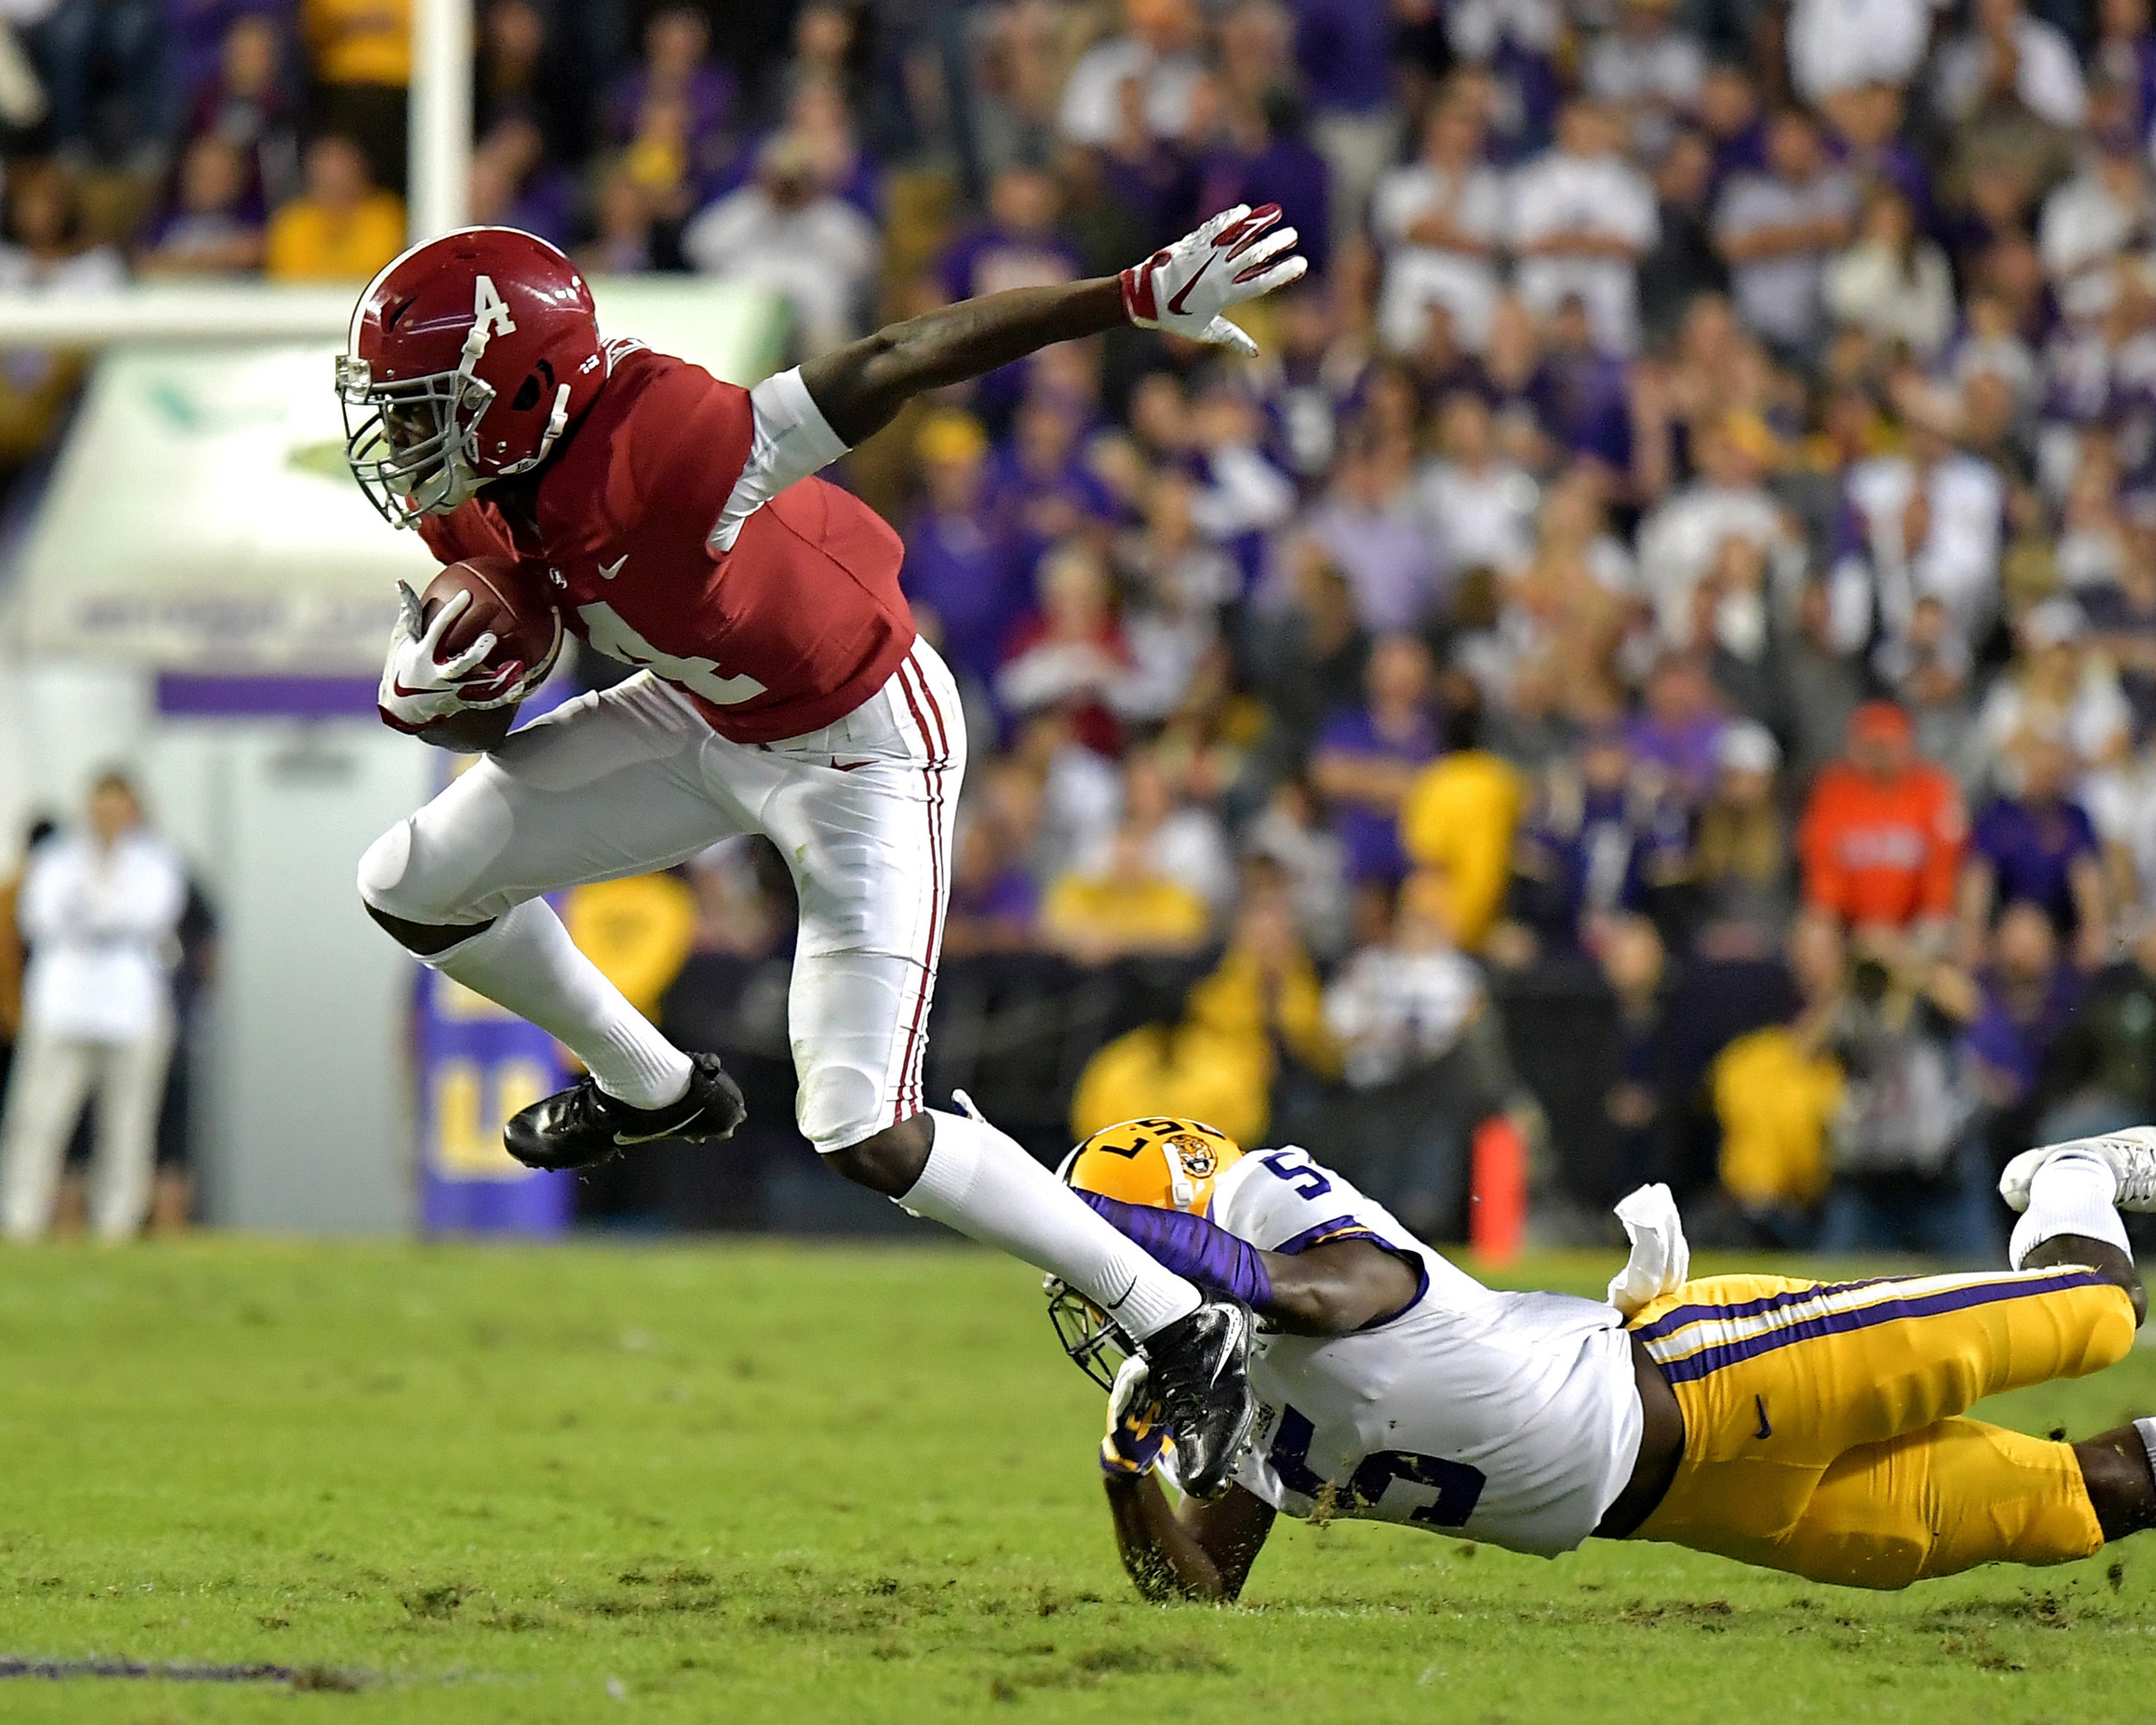 Alabama Crimson Tide wide receiver Jerry Jeudy (4) turns up the field after making a catch in the first half of an NCAA football game against the LSU Tigers Saturday, November 3, 2018, at Tiger Stadium in Baton Rouge, La. Alabama wins 29-0. (Photo by Lee Walls)